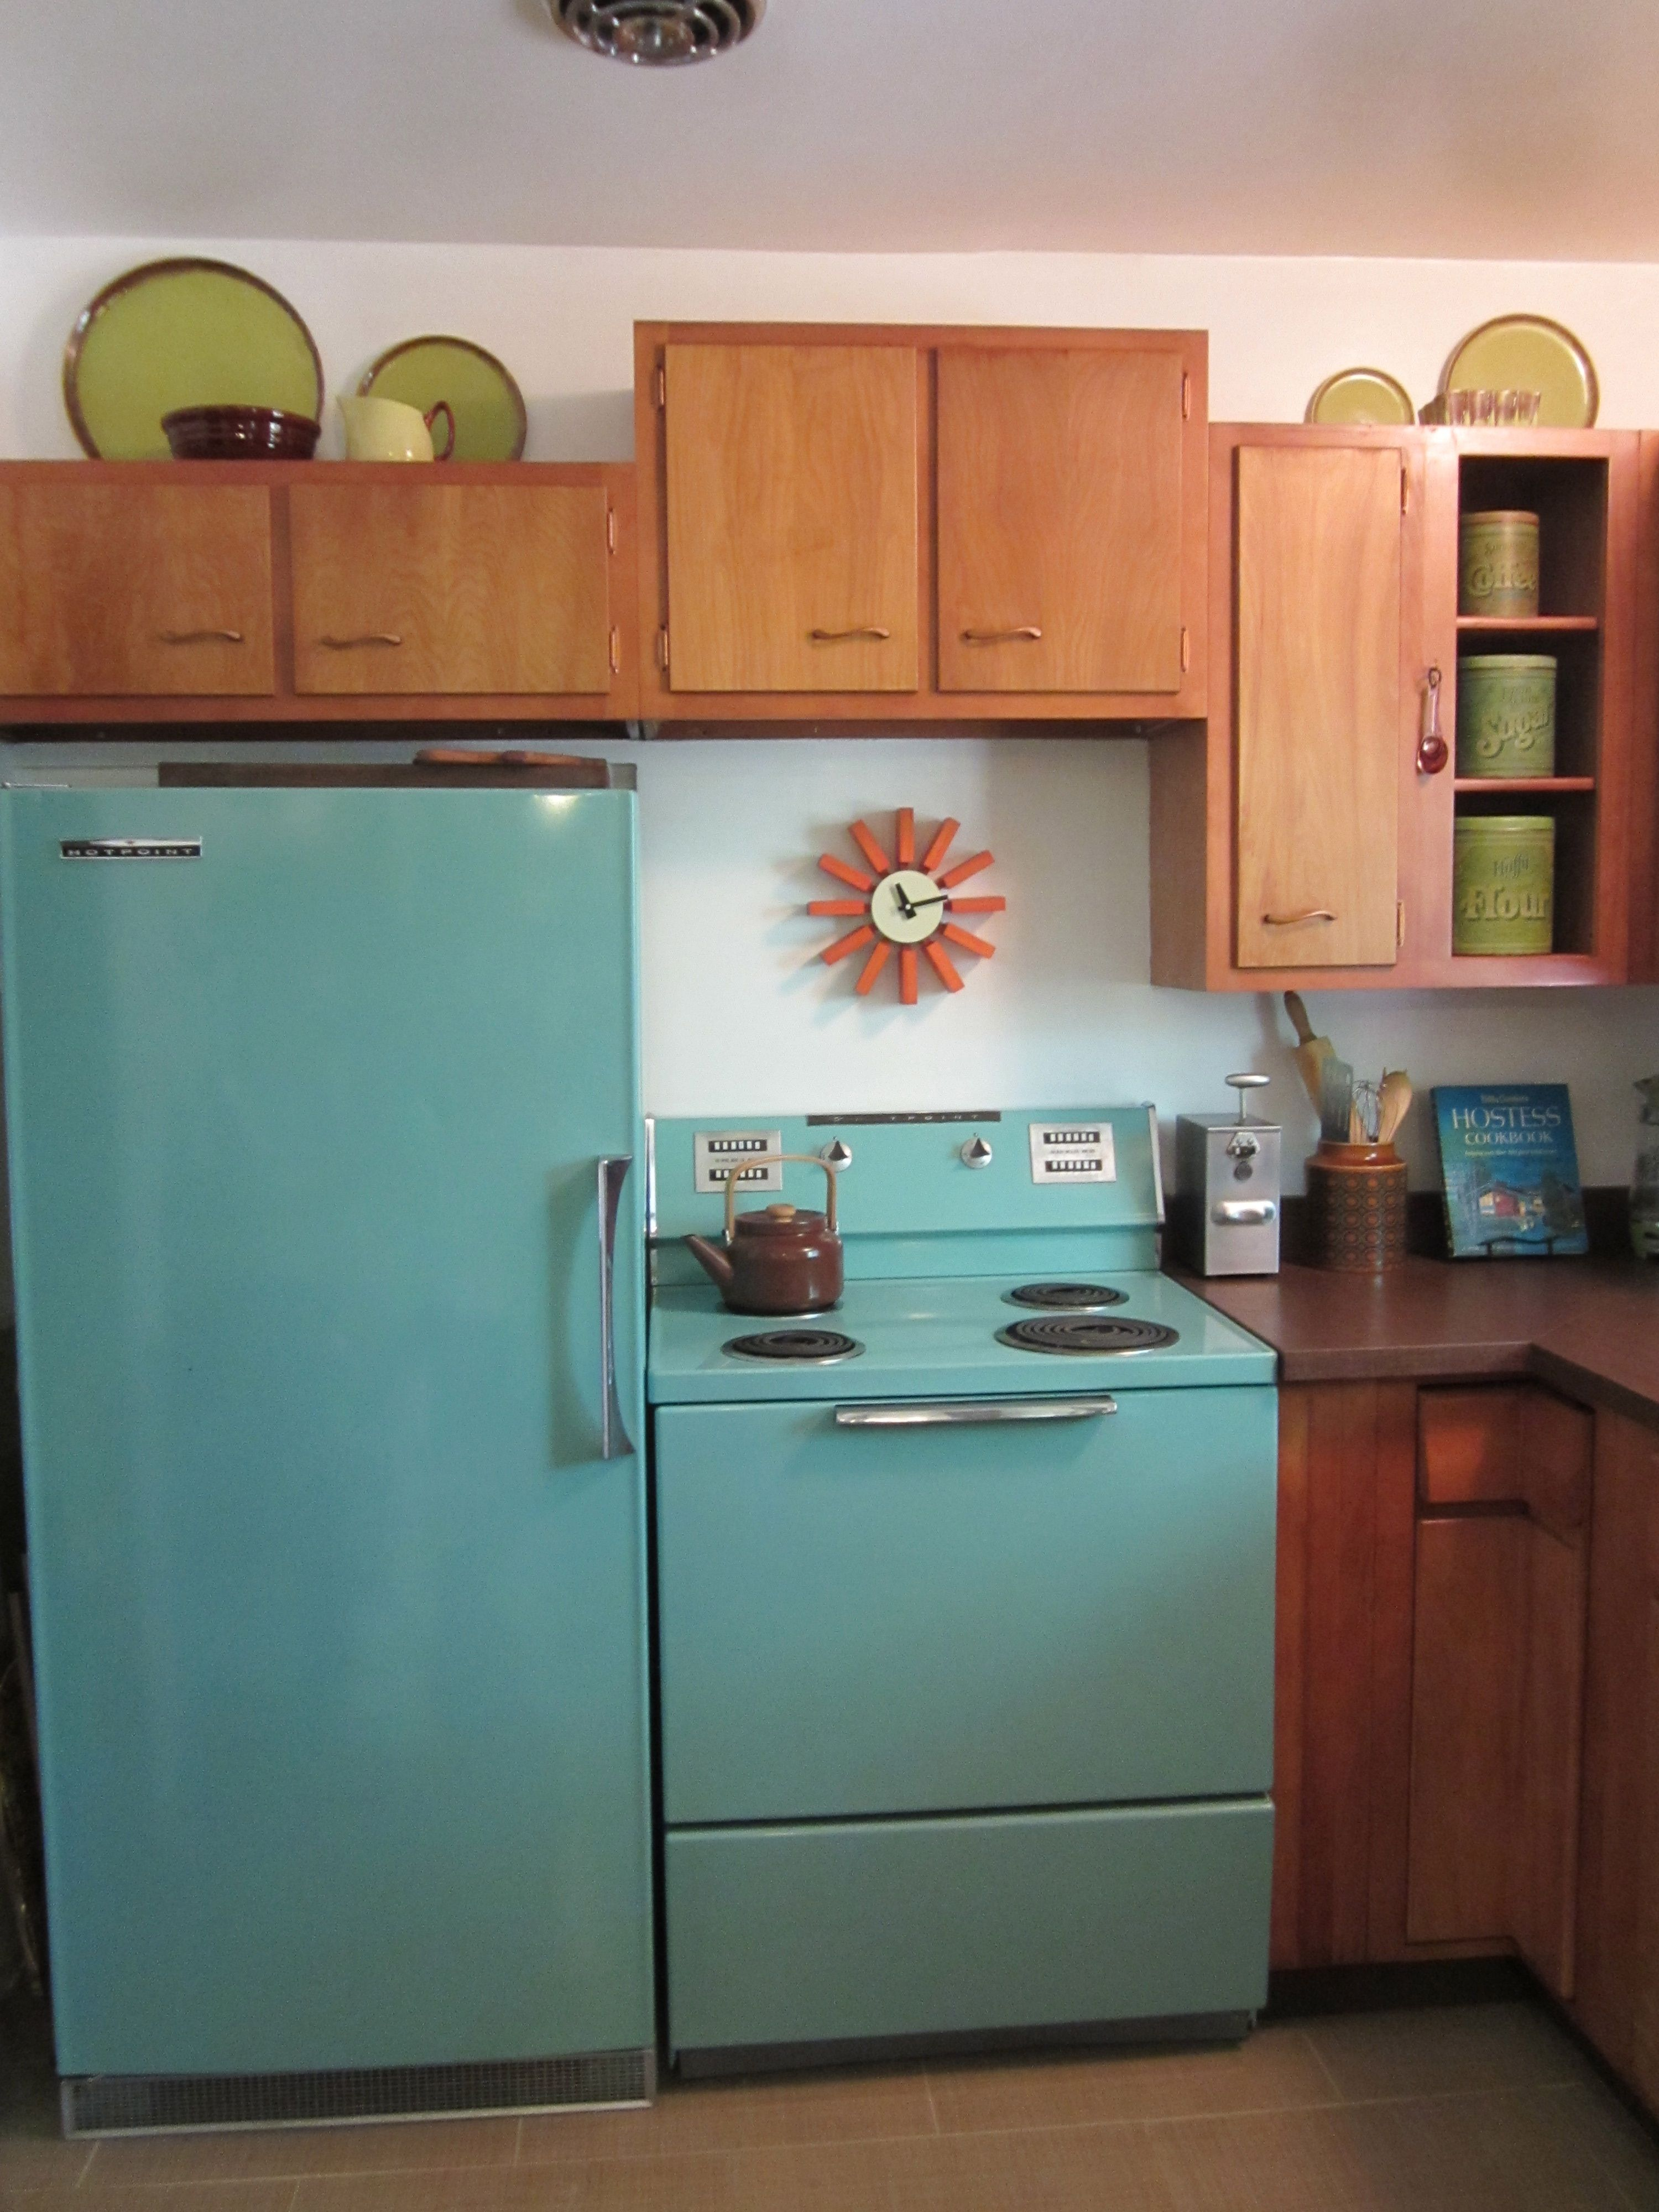 Turquoise Kitchen Appliances Single Lever Faucet 208 Pictures Of Vintage Stoves Refrigerators And Large